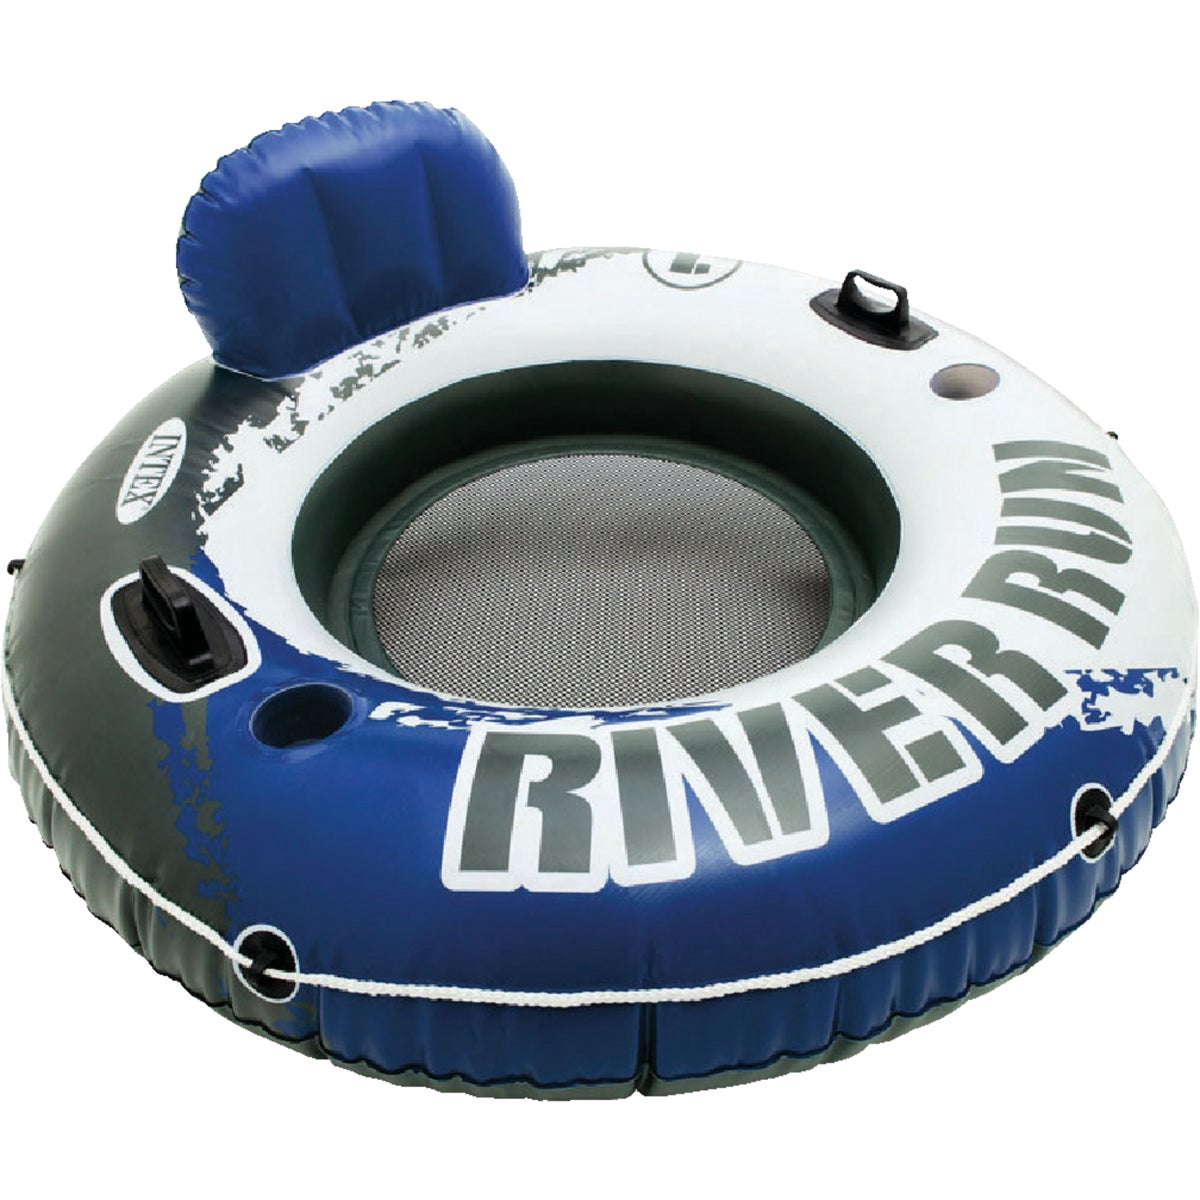 RIVER RUN I TUBE - 58825EP by Intex Recreation